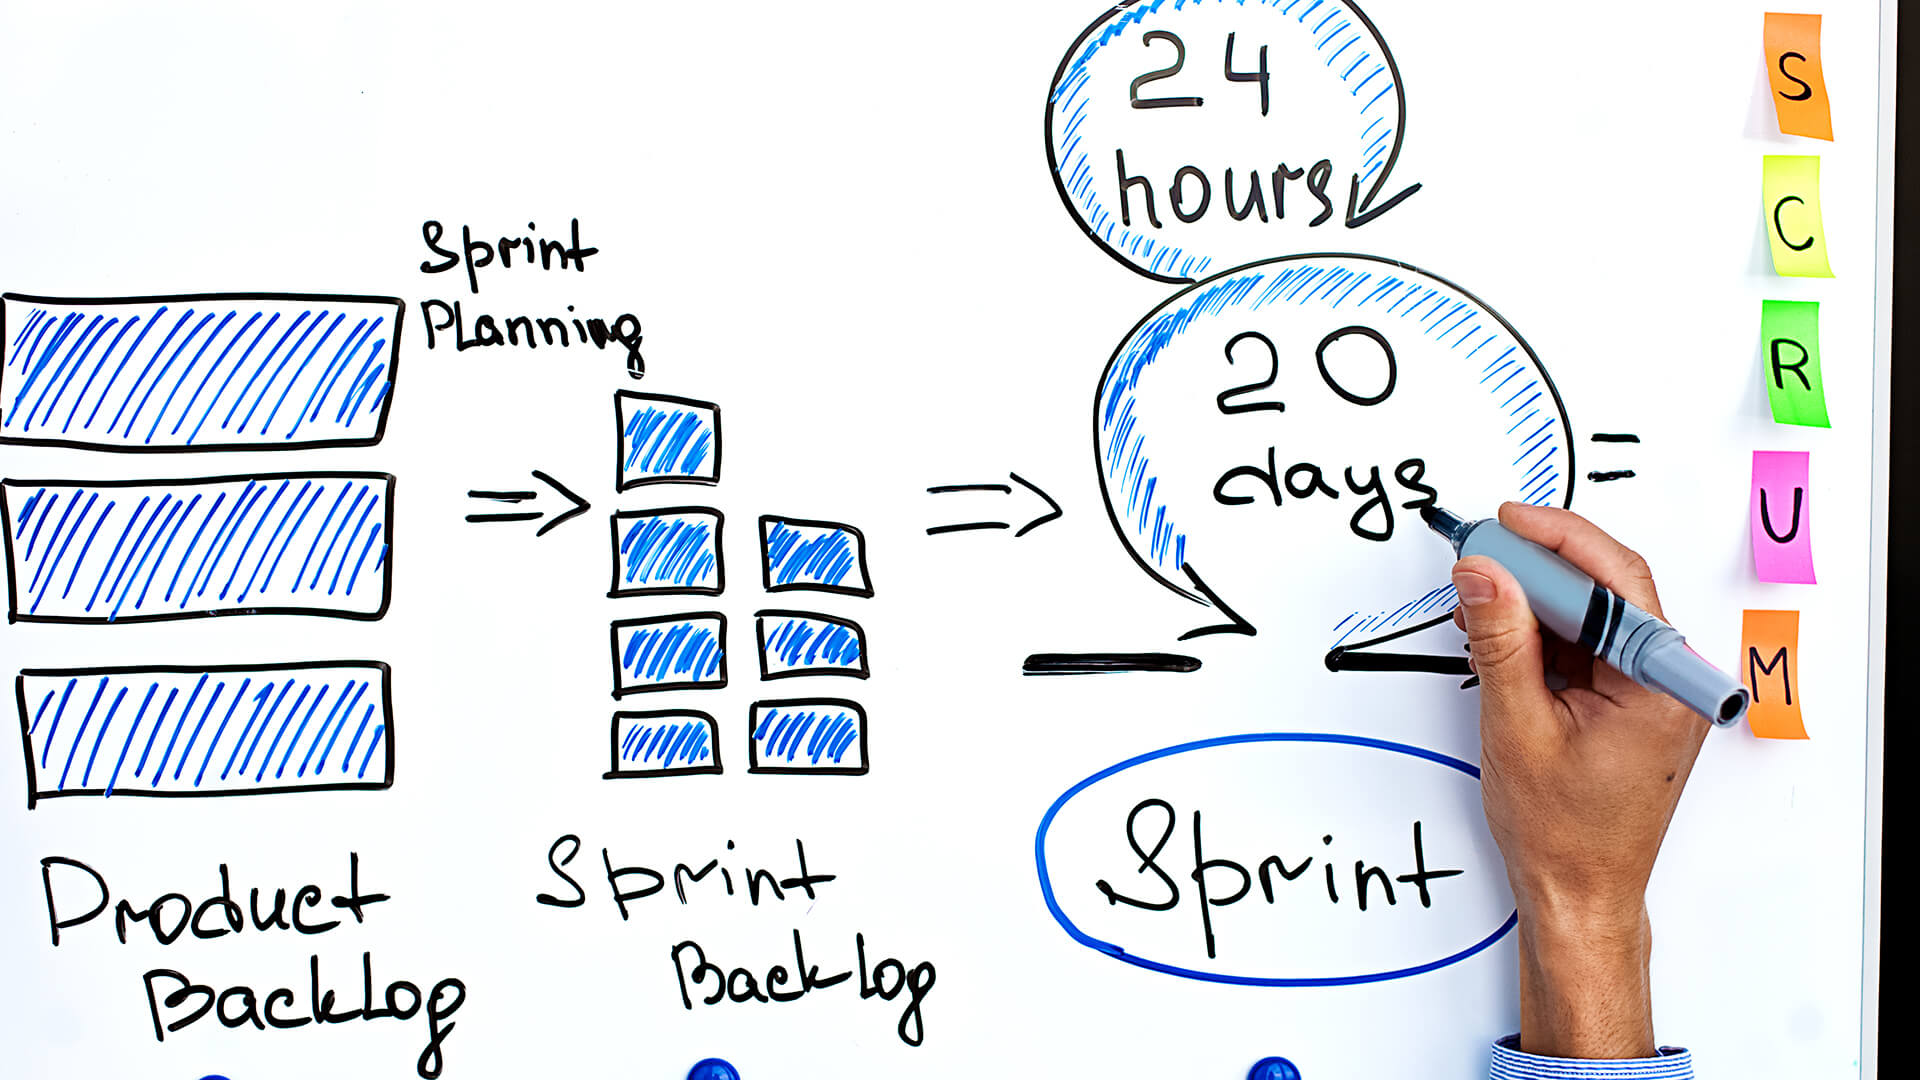 How marketers are changing agile practices to meet their needs